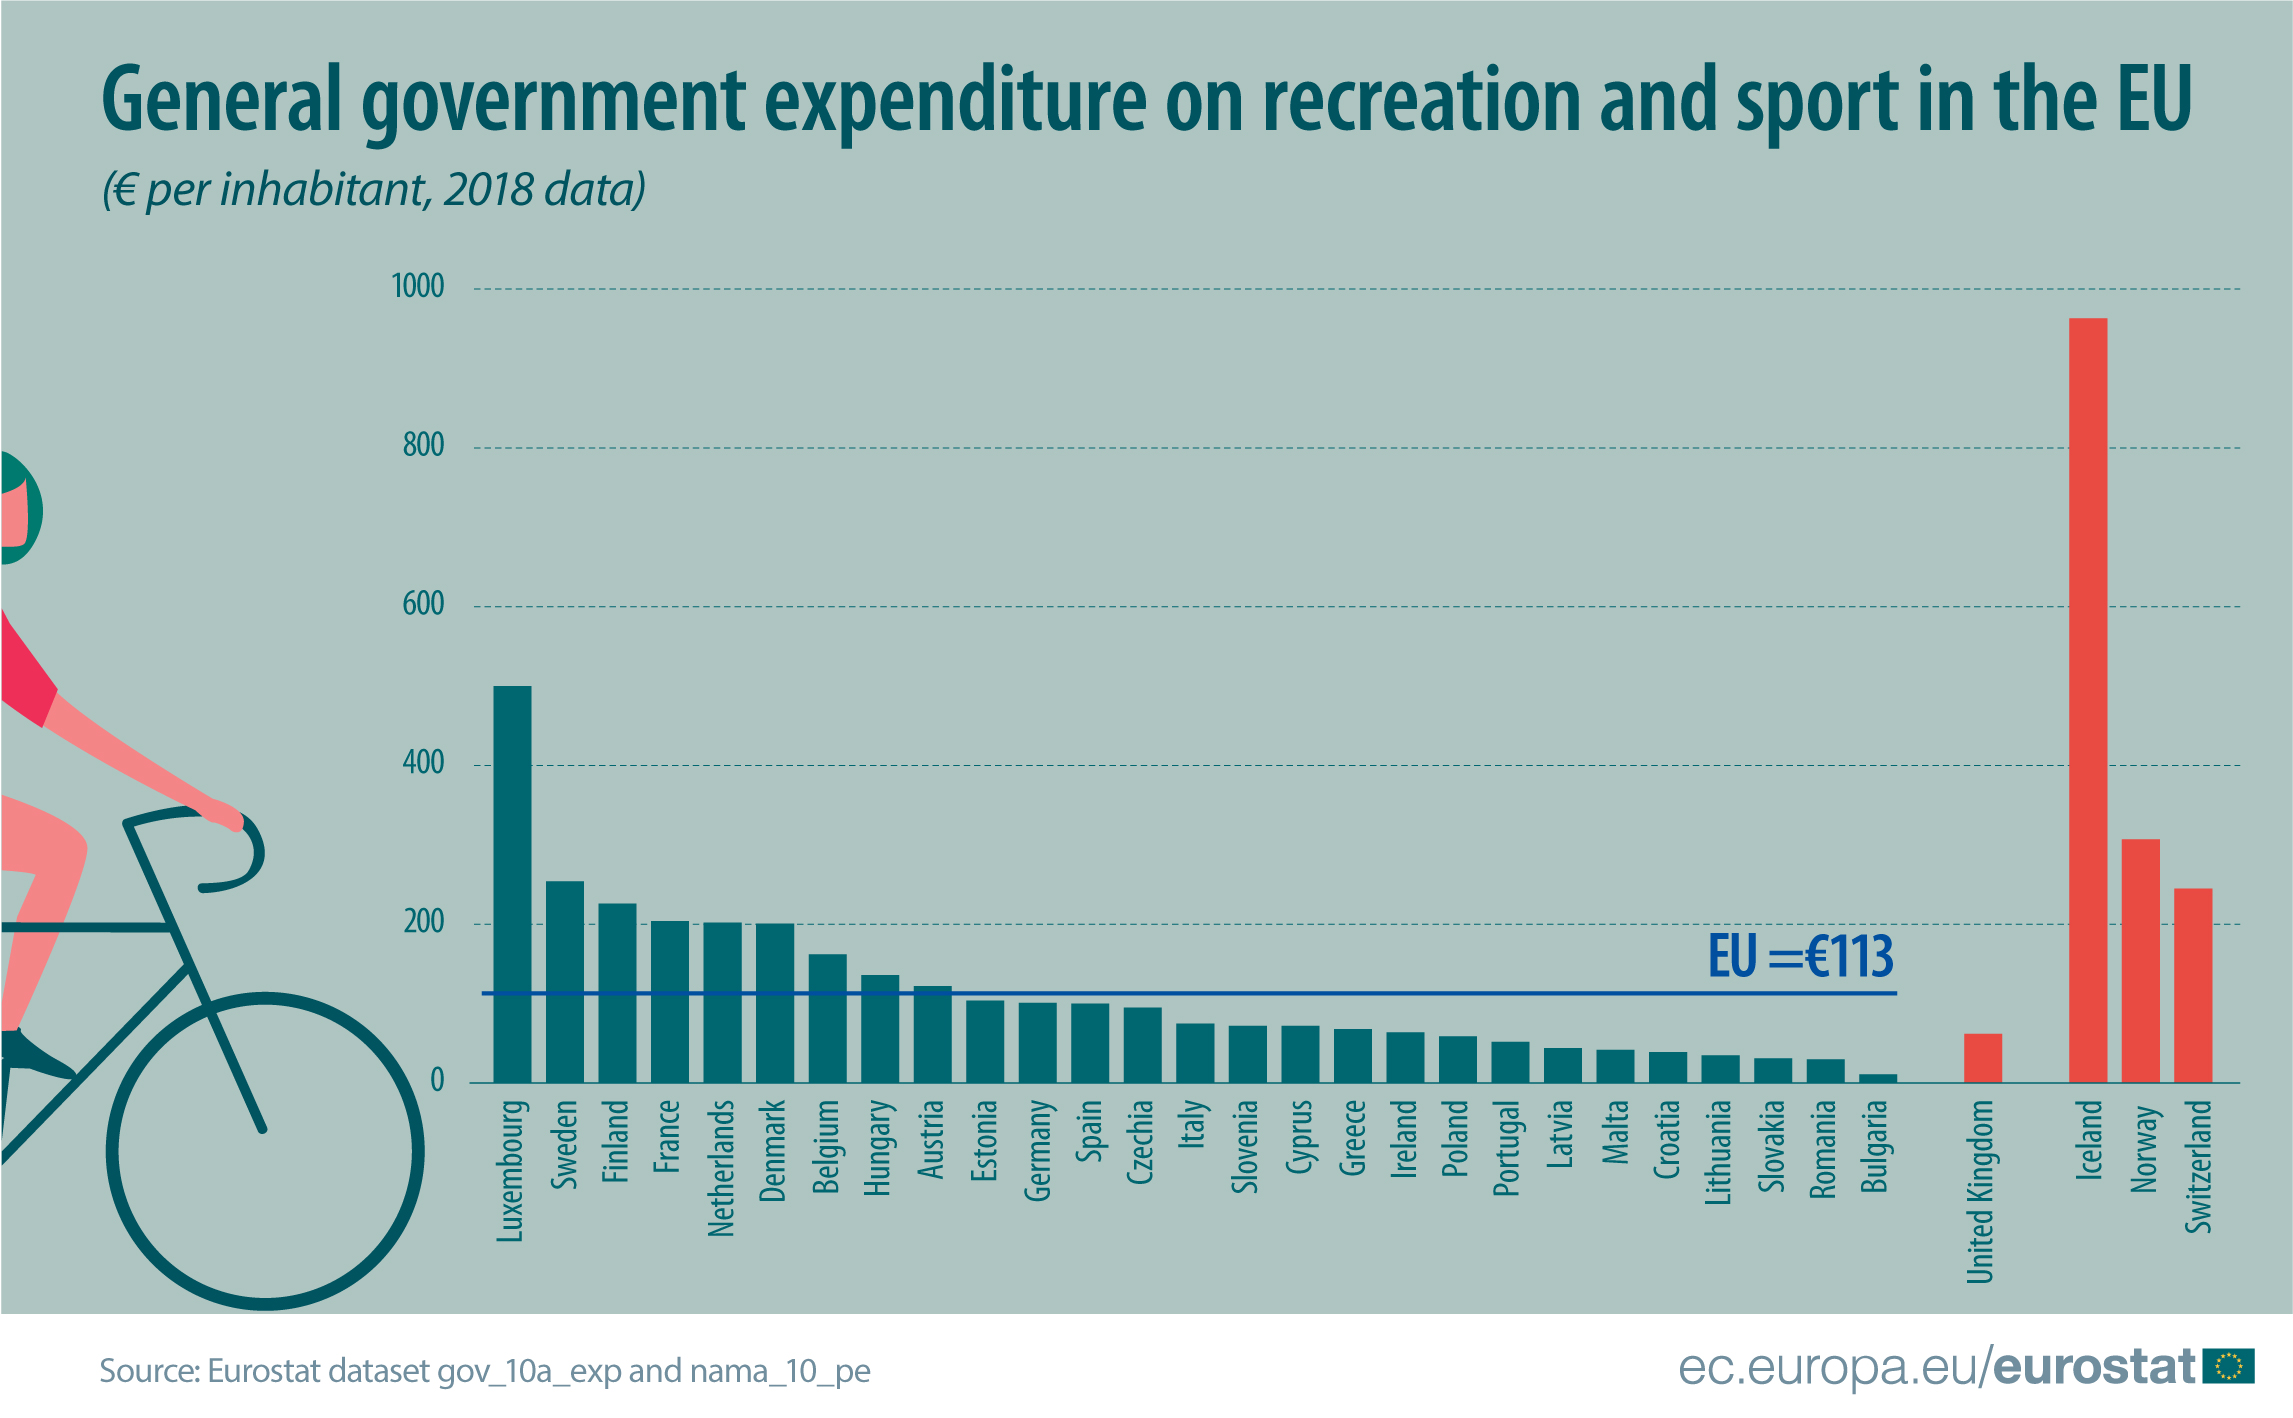 General government expenditure on recreation and sport in 2018